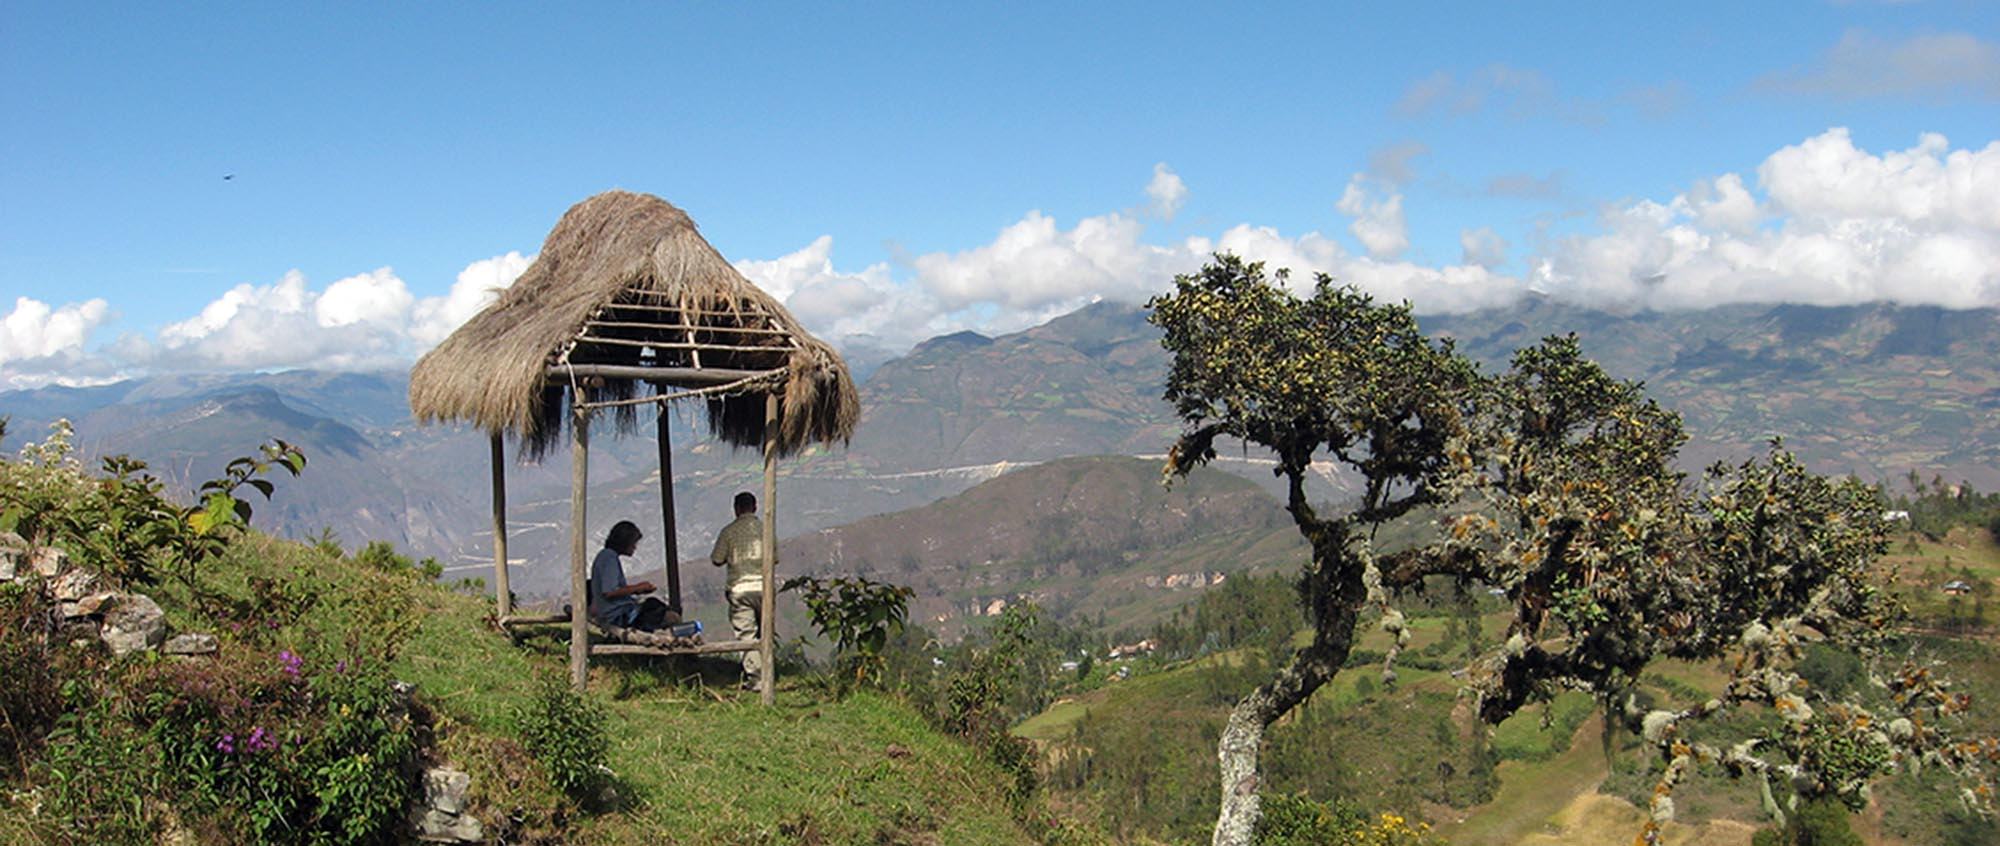 In solidarity with the people of northern Peru